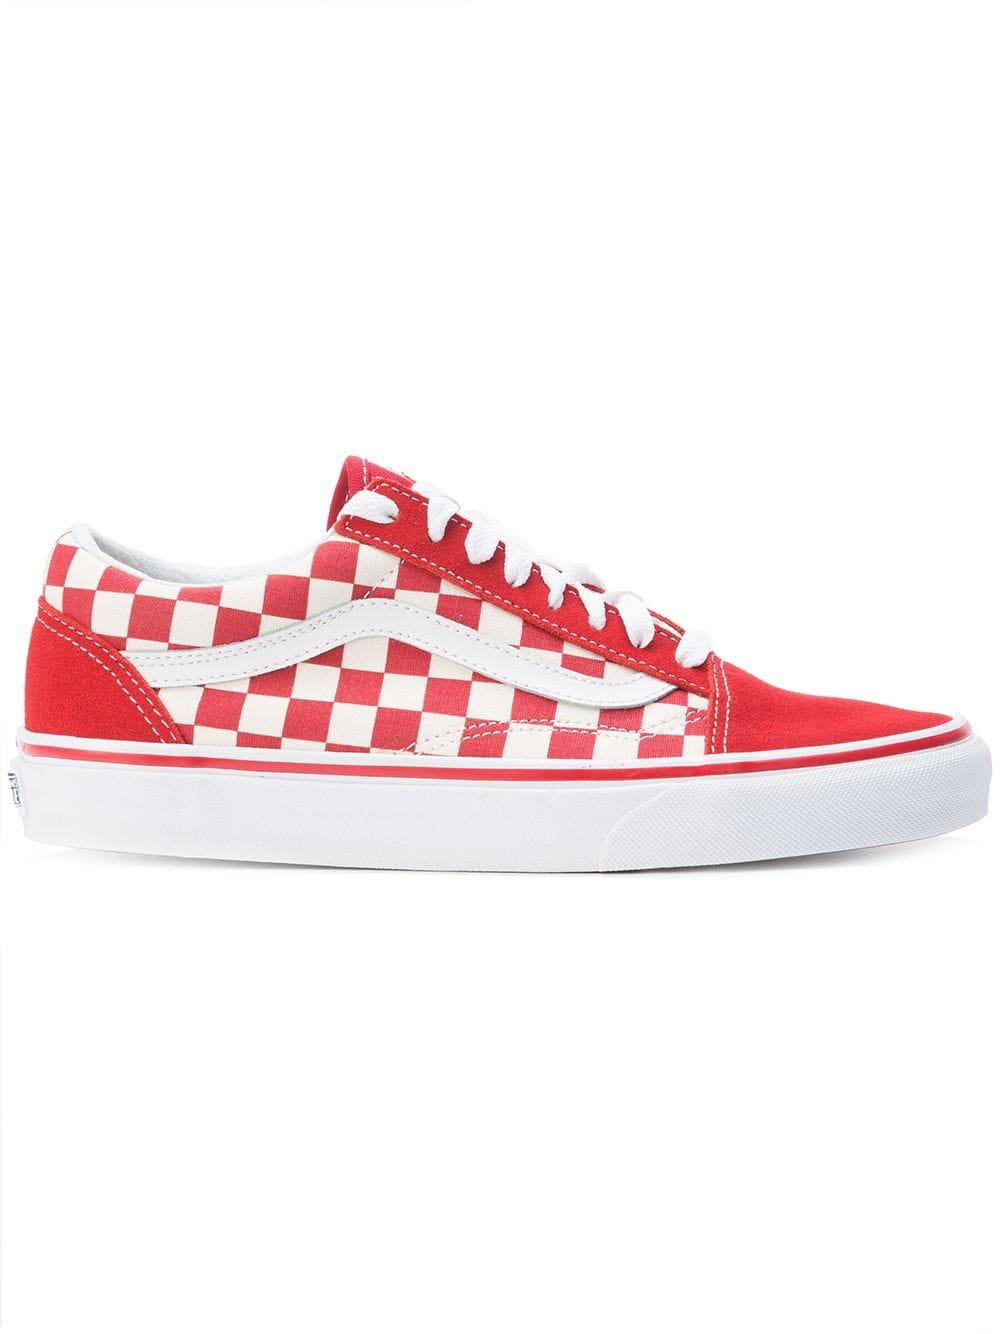 Vans Cotton Checkered Lace-up Sneakers